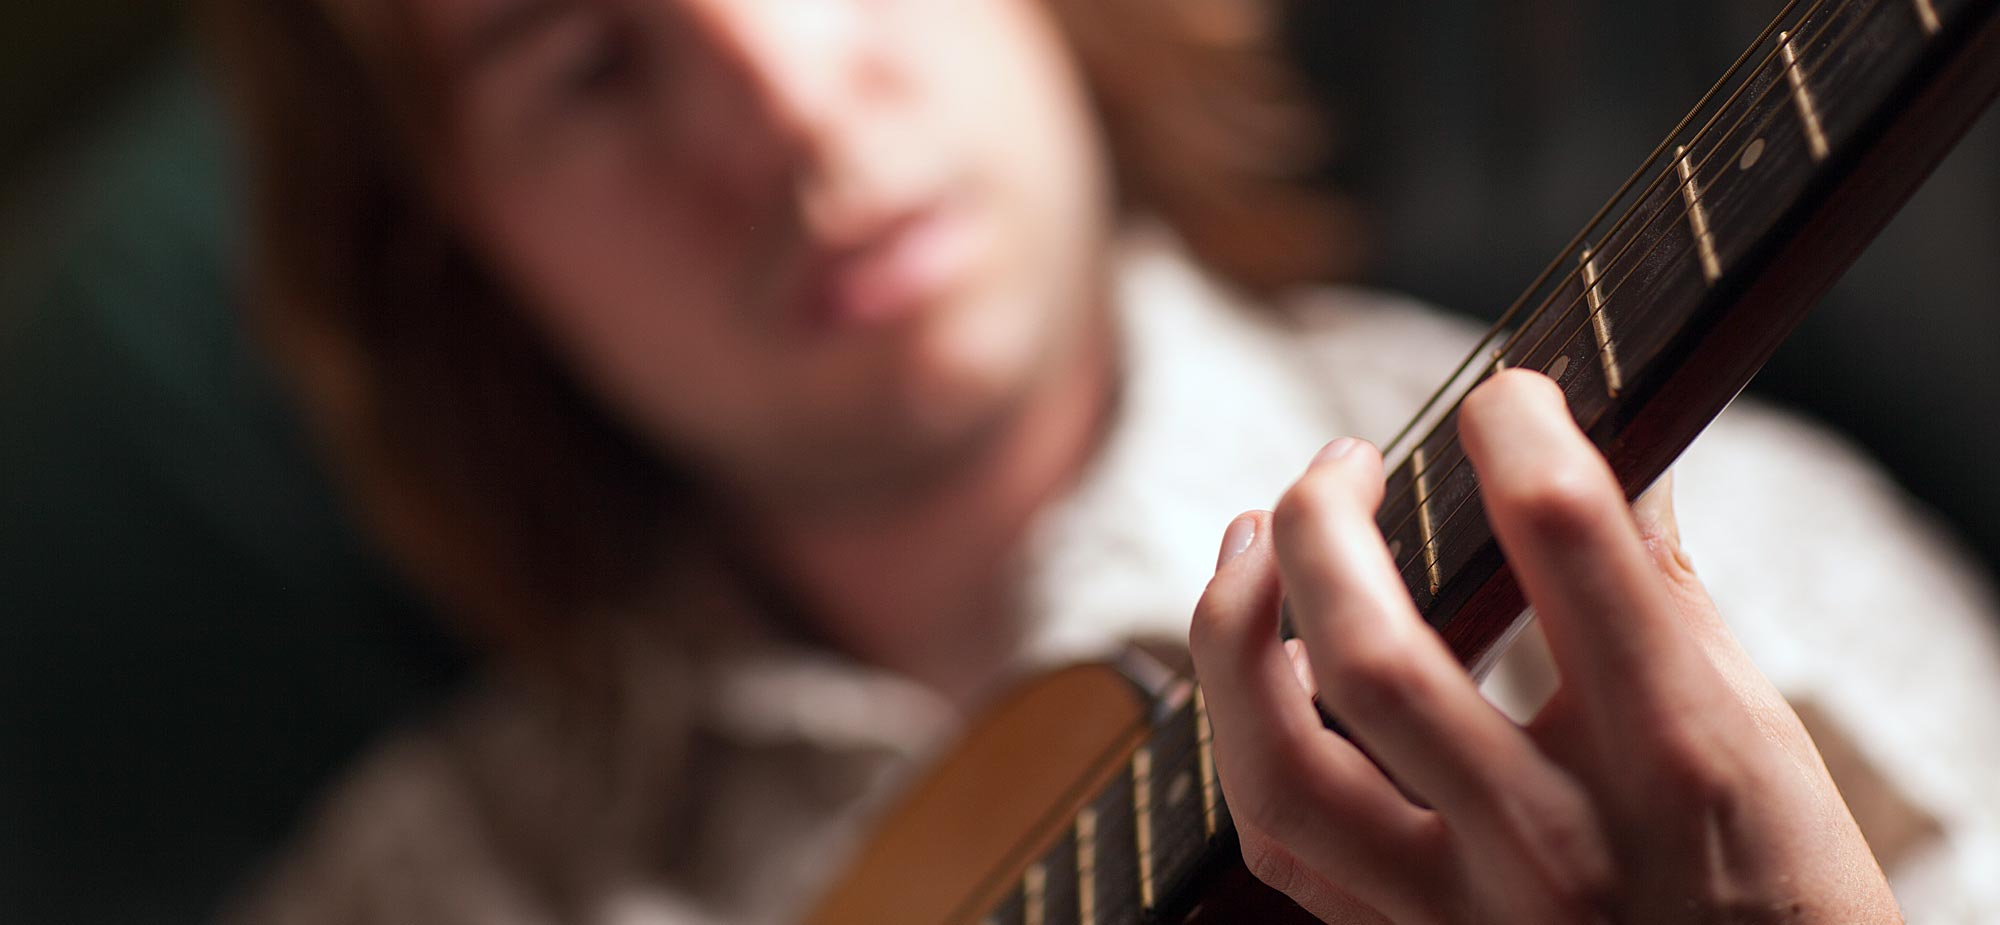 Learn how to properly play the acoustic guitar @ St. Lucie Music Lessons.